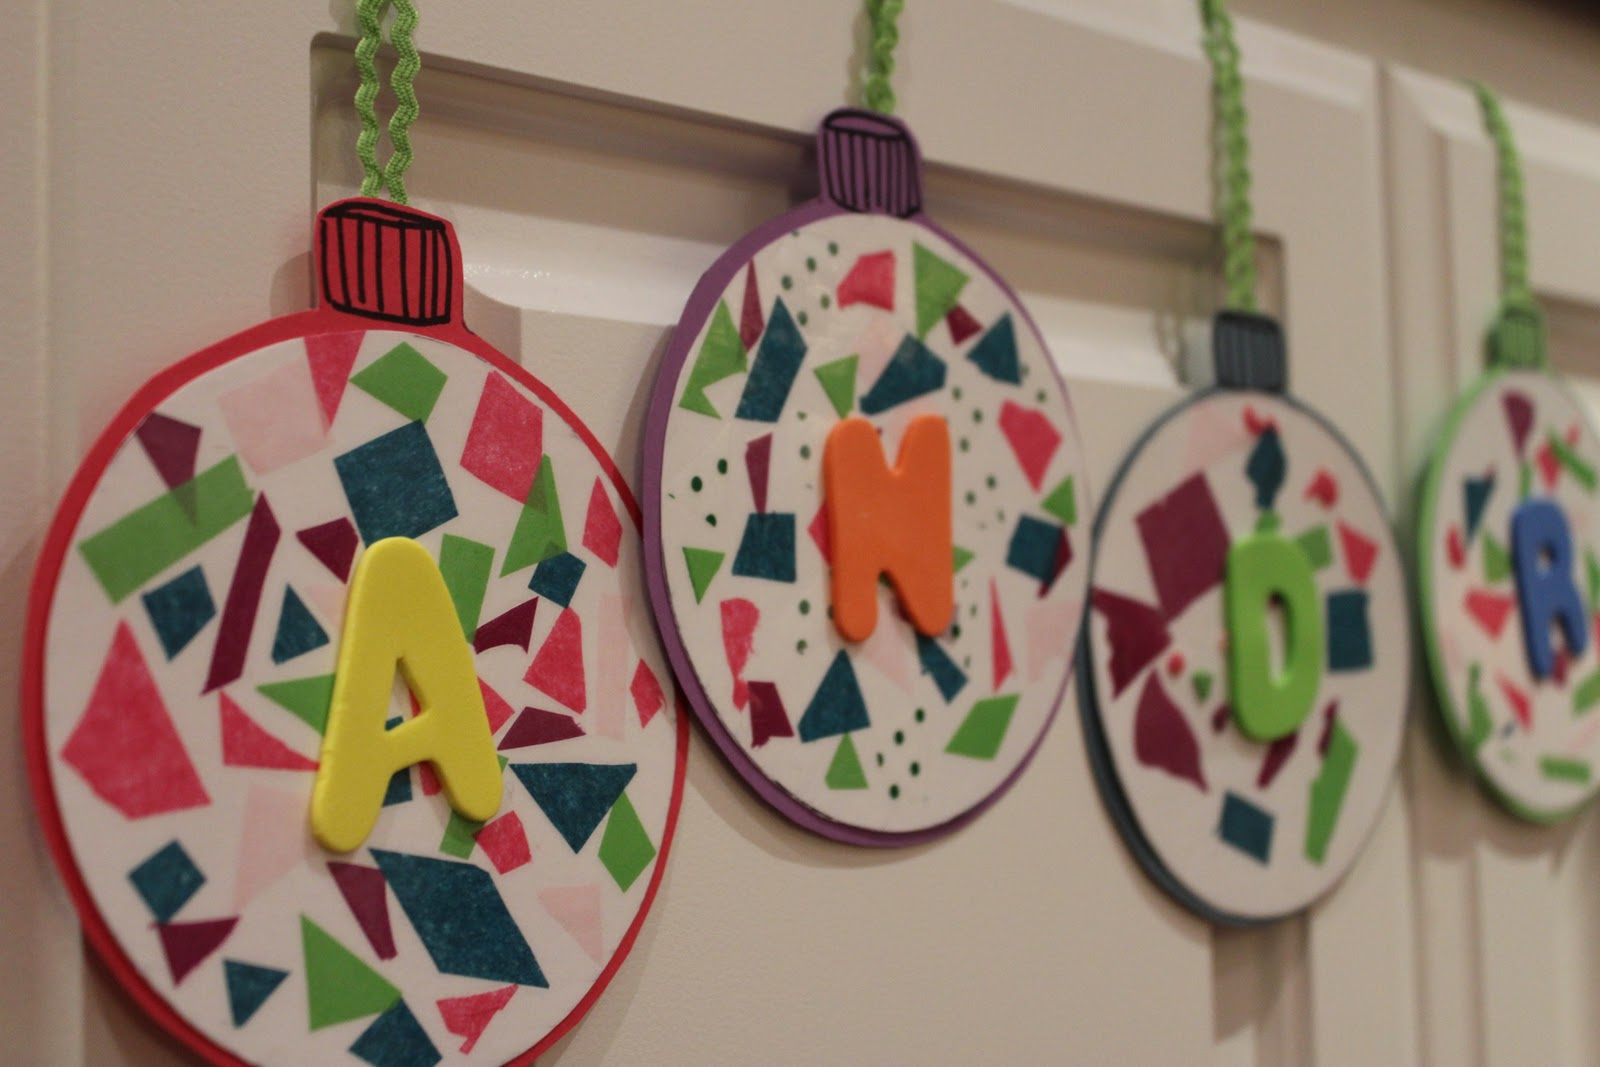 Paper christmas ornaments for toddlers - Paper Christmas Ornaments For Toddlers